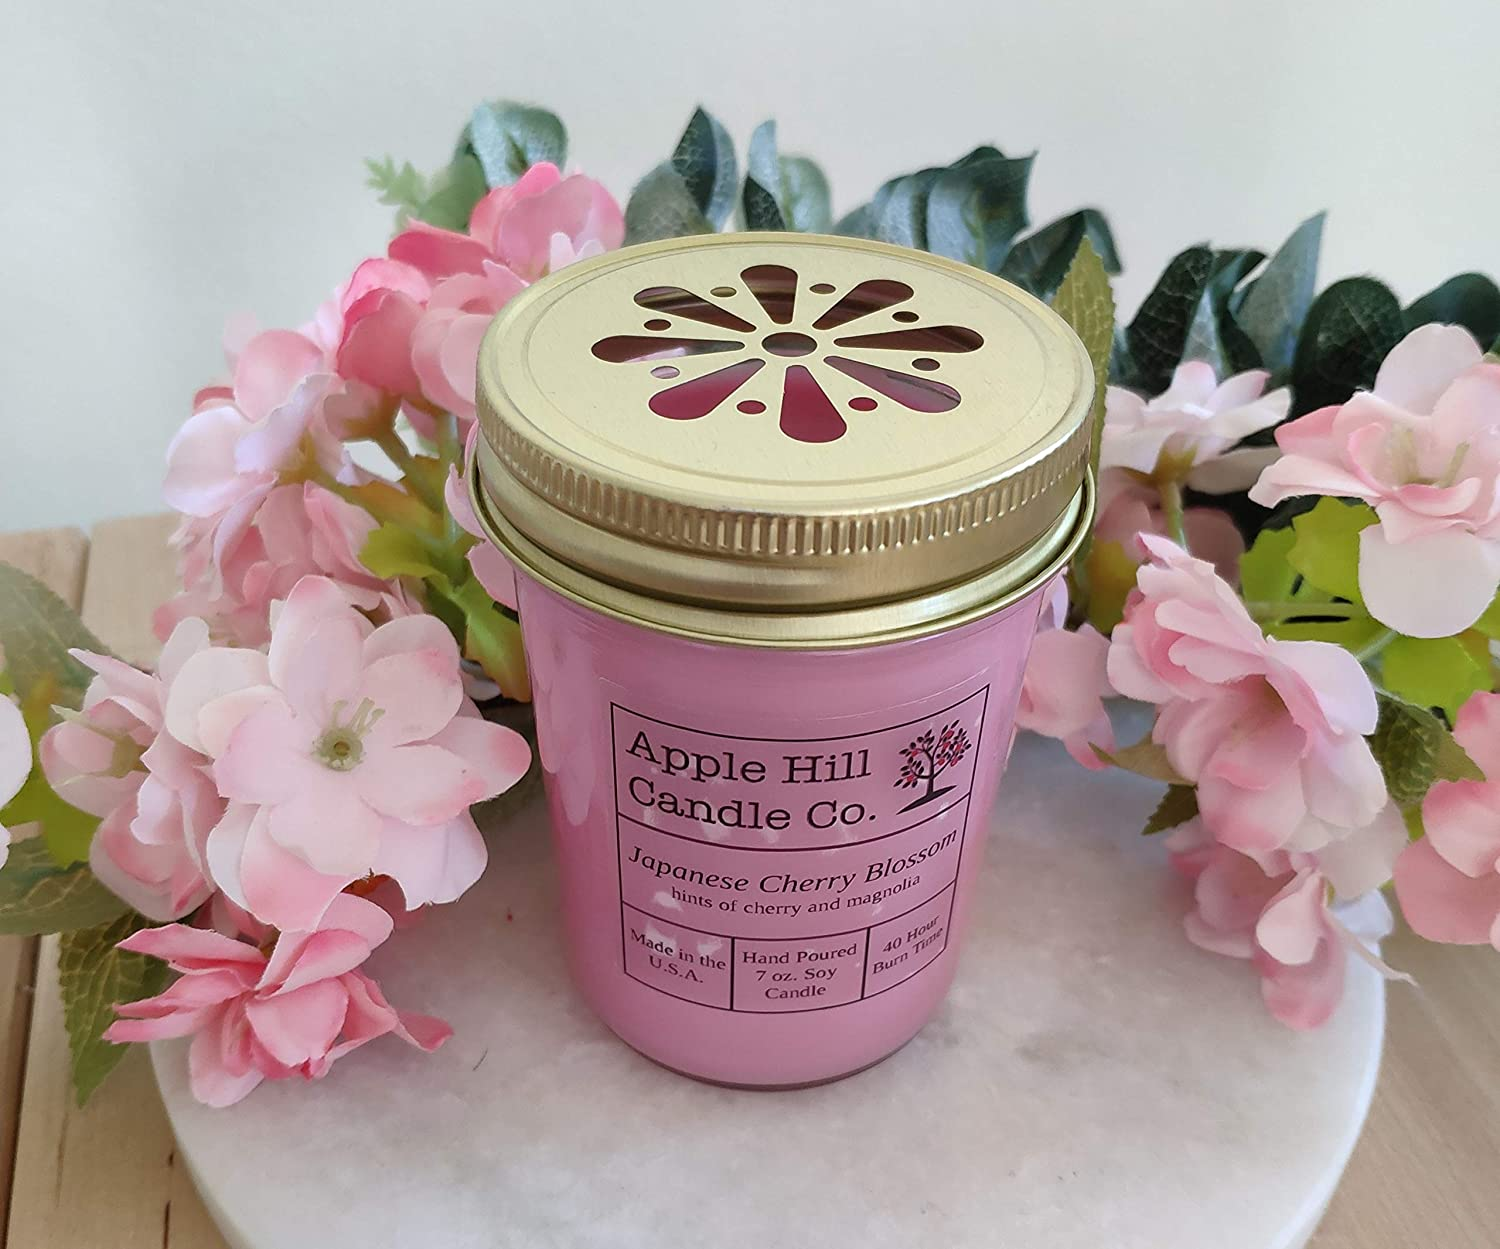 Apple Hill Candle Co Natural Soy Candle - Japanese Cherry Blossom 7 oz.   Perfect for Spring!   30-40 Hour Burn Time